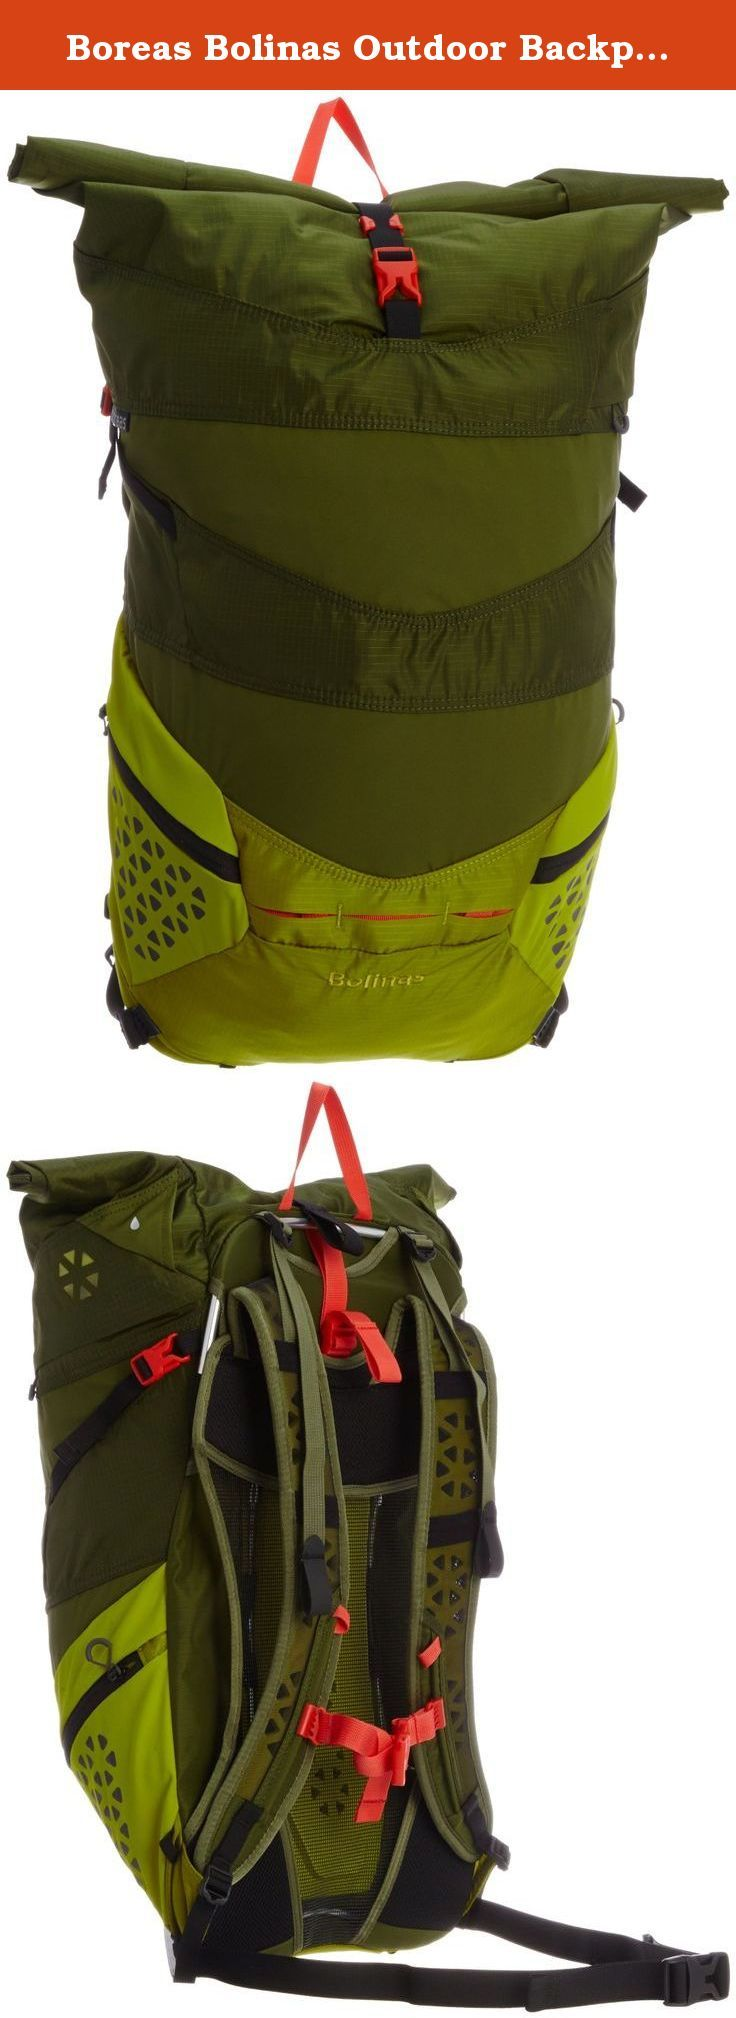 Boreas Bolinas Outdoor Backpacks, Truckee Green, One Size. There's nothing else like it: an incredibly comfortable, stylish and bike-friendly roll-top that converts to a load-hauling daypack. Perfect for the daily commuter or the weekend adventurer. Fabrics: 210D nylon rip stop with UTS impregnated silicone coating. Suspension: Our variable suspension, aka Super-Tramp (patent pending), lets users adjust their pack suspension with the tug of a strap. Tighten the strap and it's a trampoline...